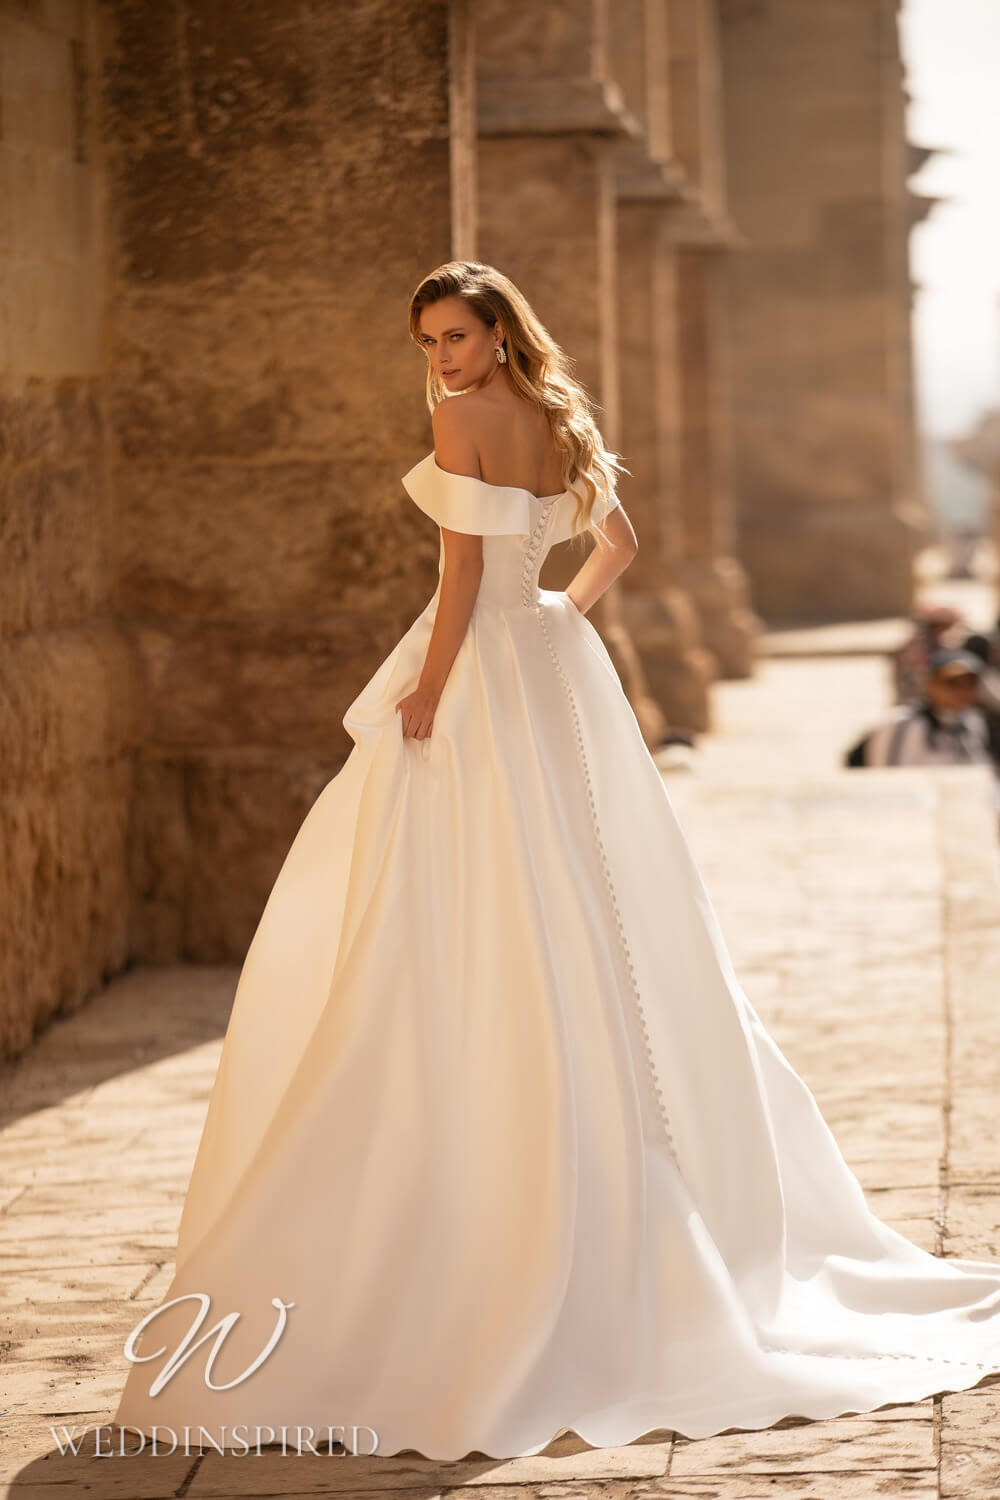 An Essential by Lussano 2021 simple satin off the shoulder princess wedding dress